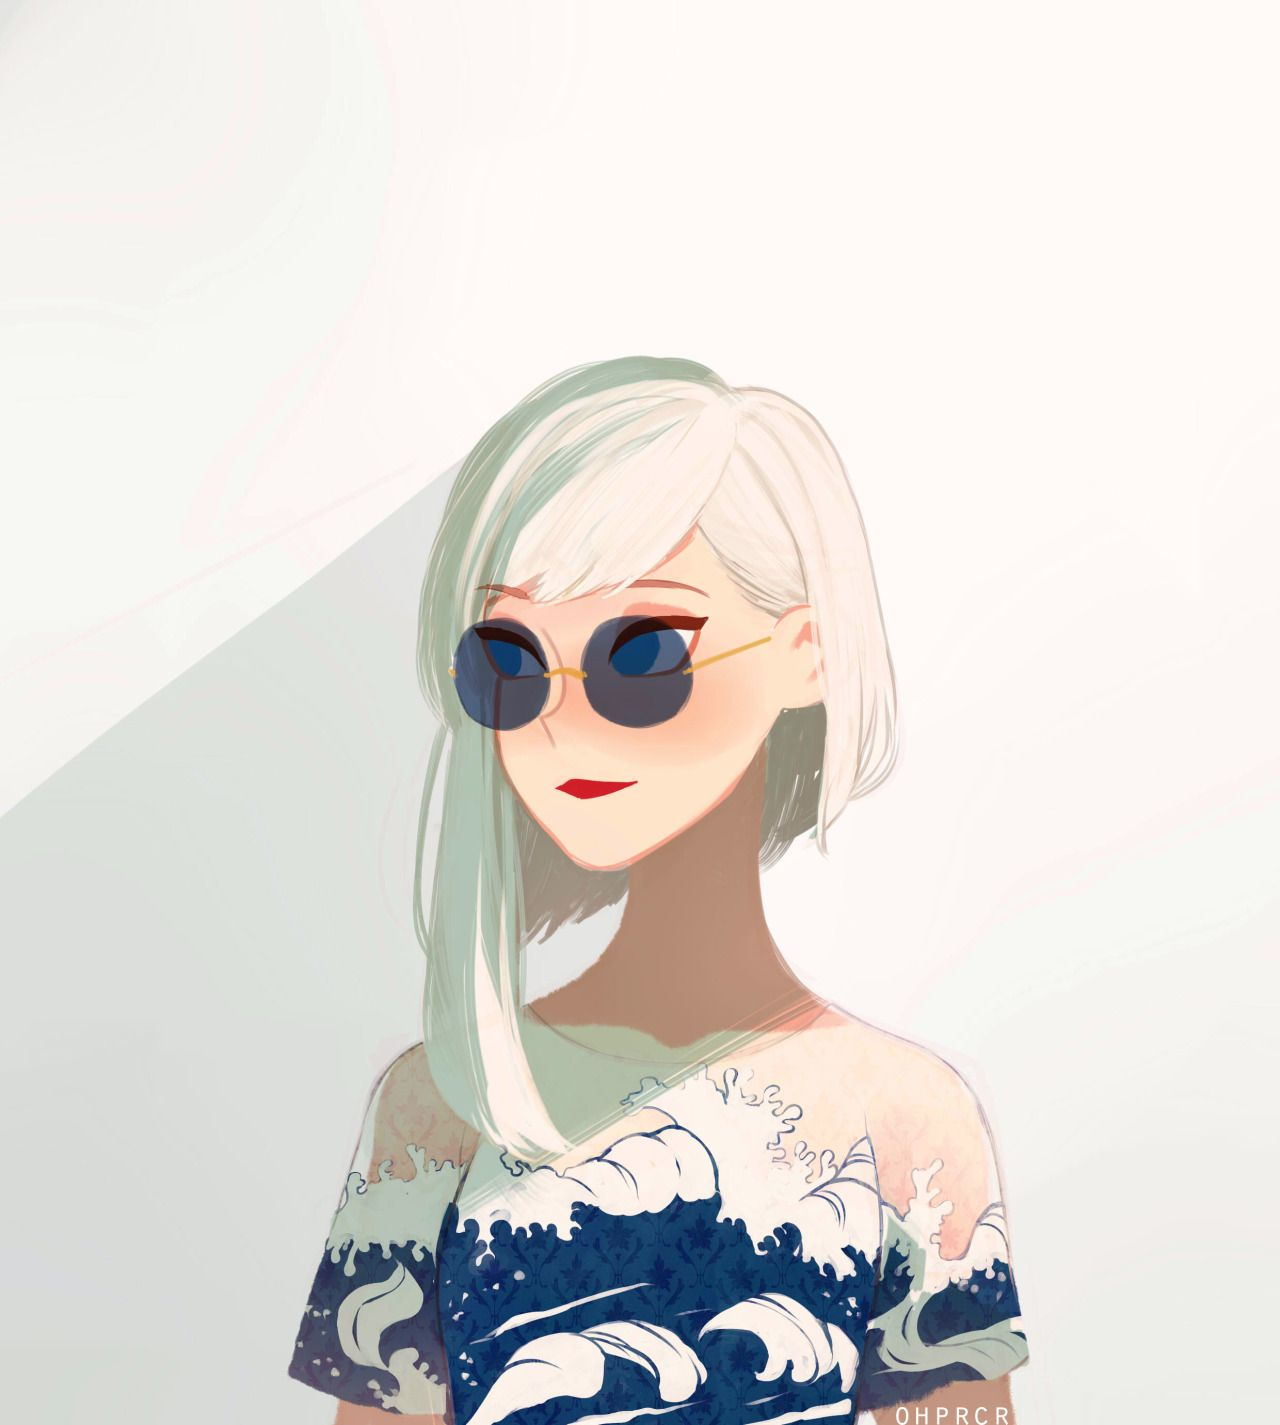 So Pretty No Idea Whether My Hair Would Willingly Play Any Part Of T Shirt Fredom Buterfly Wanita B0020 This Game But Still Long Asymmetric Bobs For The Win